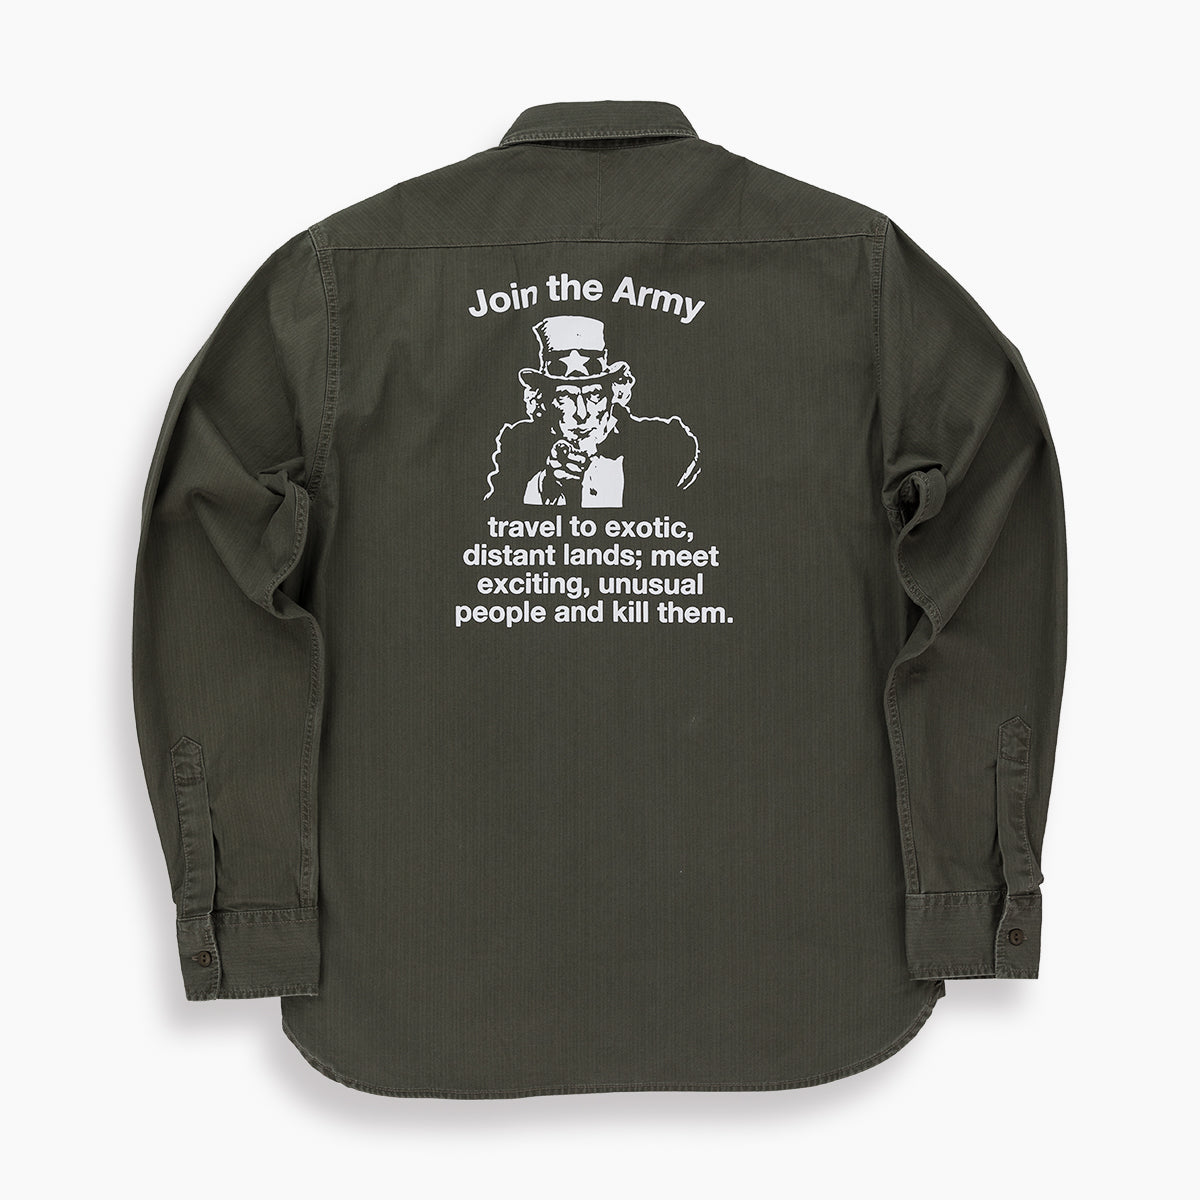 JOIN THE ARMY SHIRT